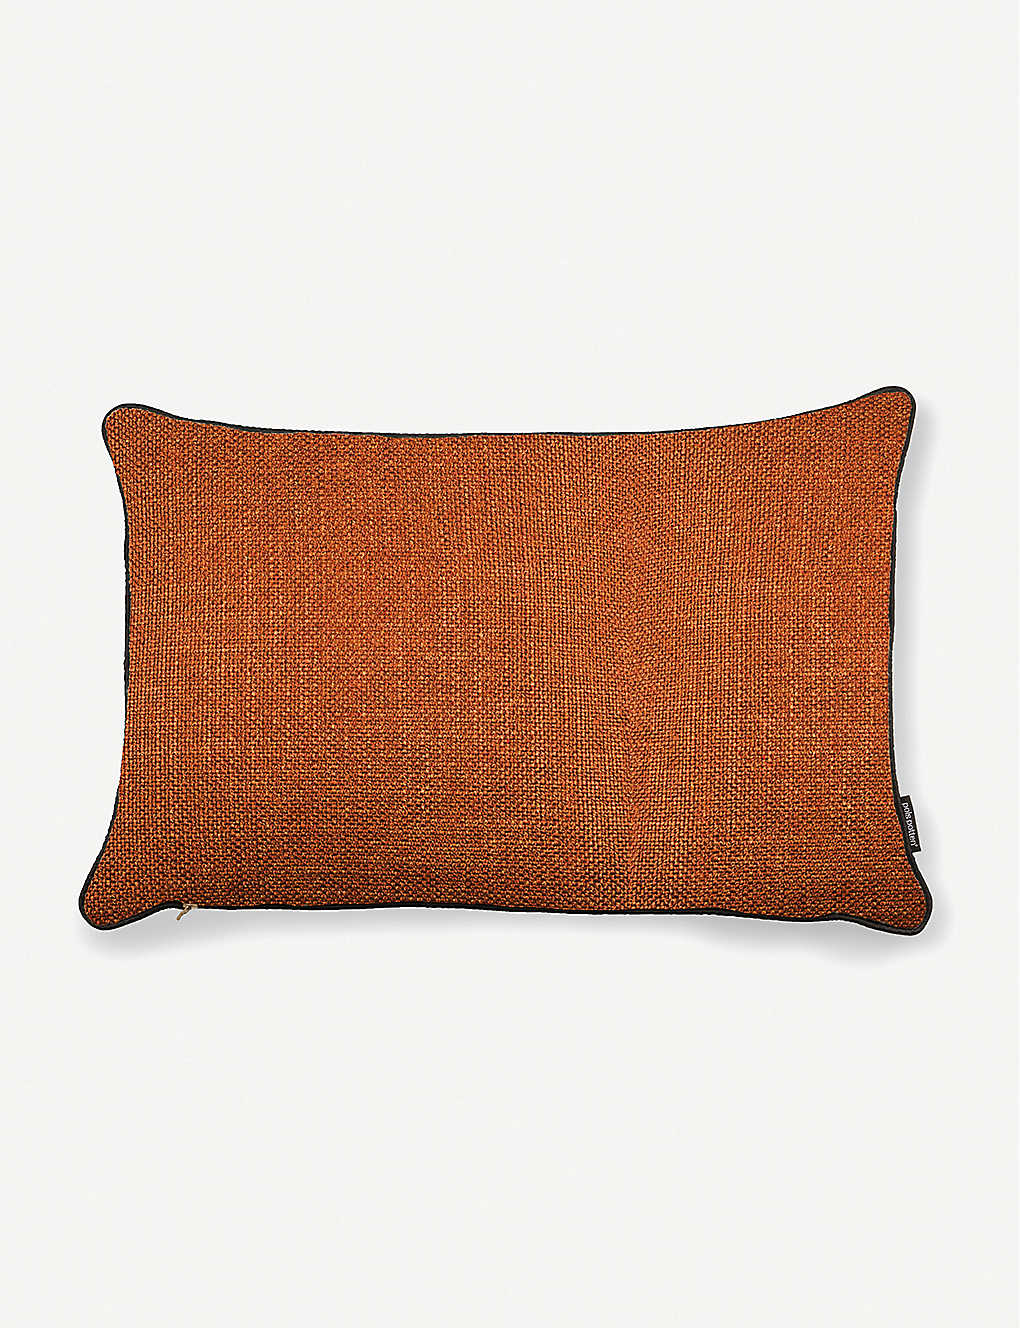 POLS POTTEN: Smooth bordered woven cushion 40cm x 60cm